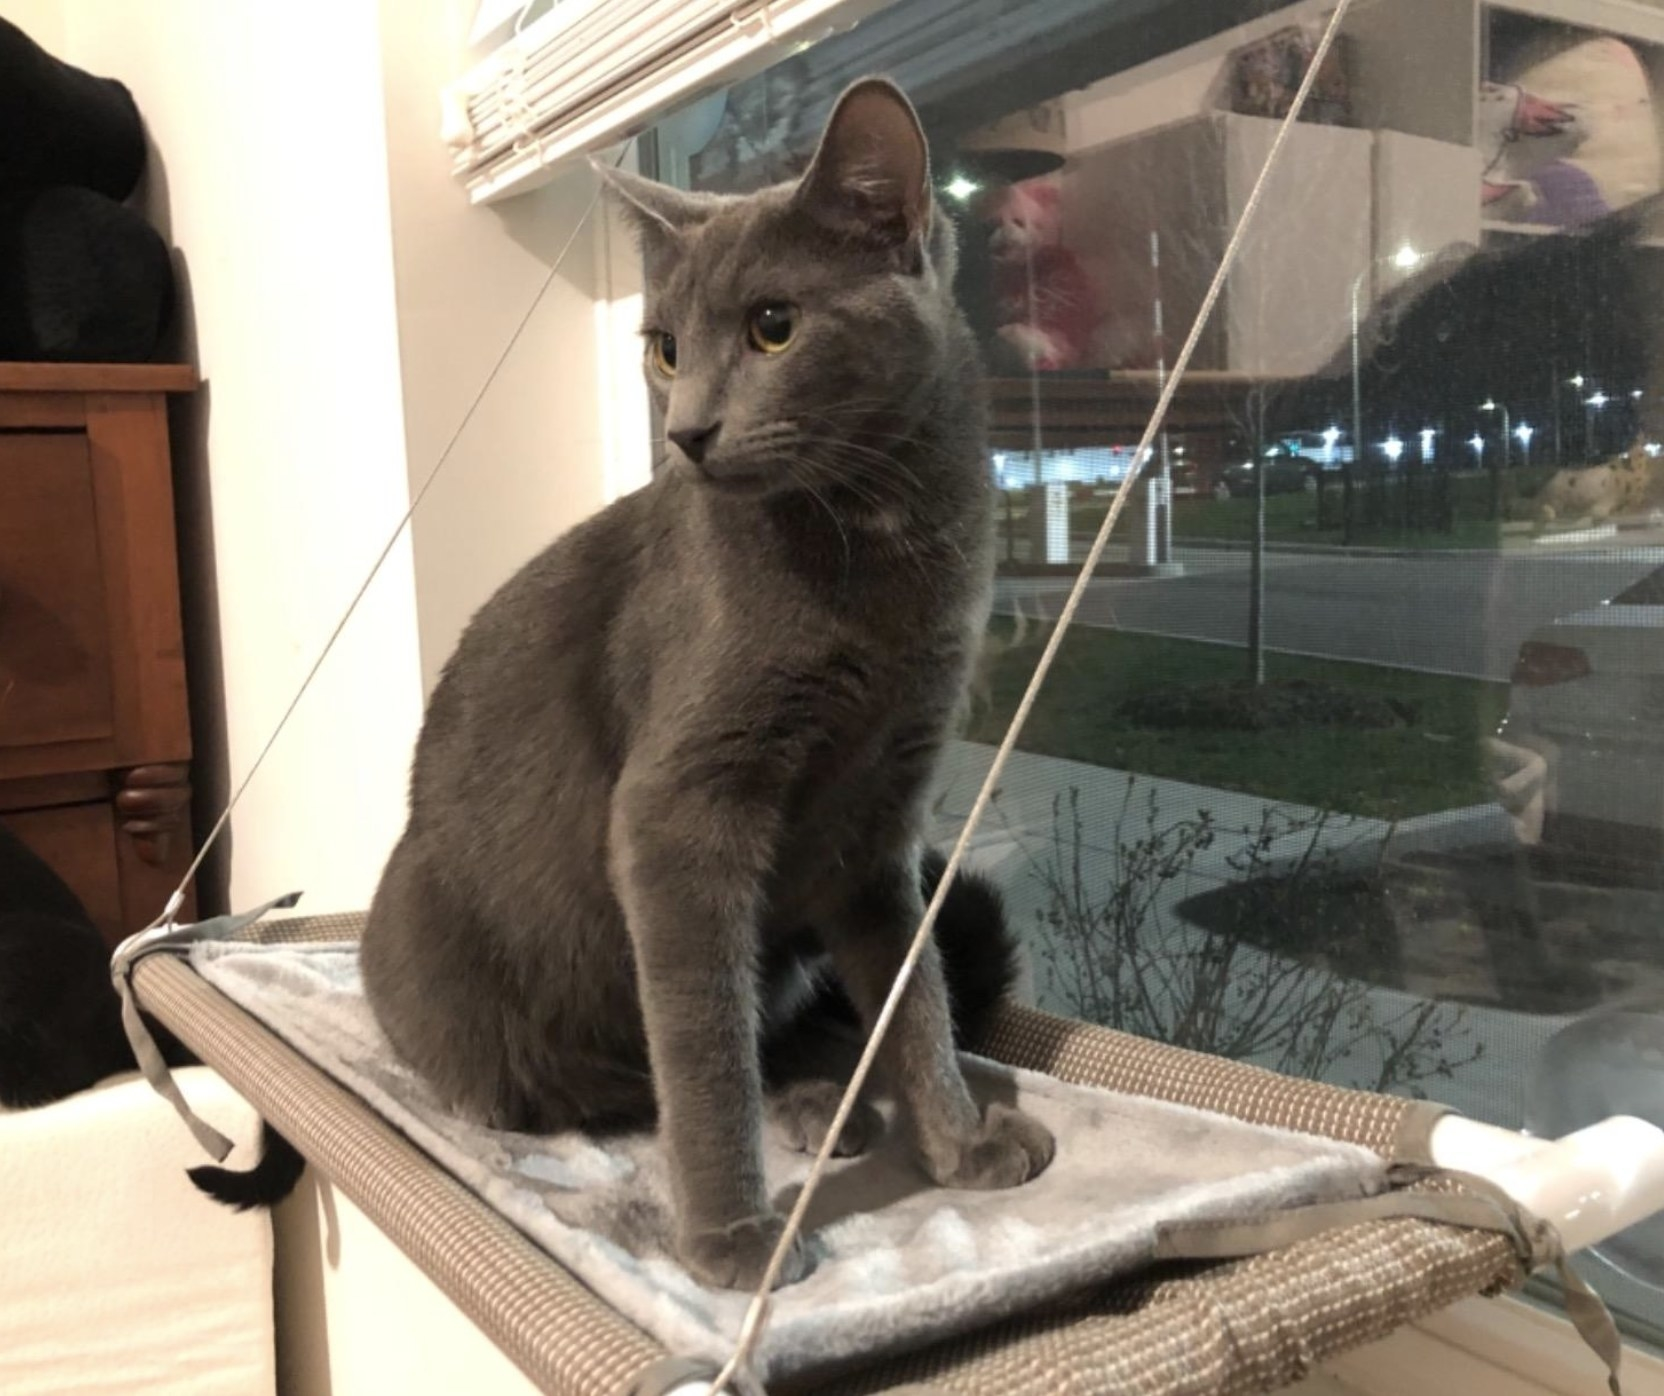 a grey cat sitting on a beige cat cot that is adhered to the window